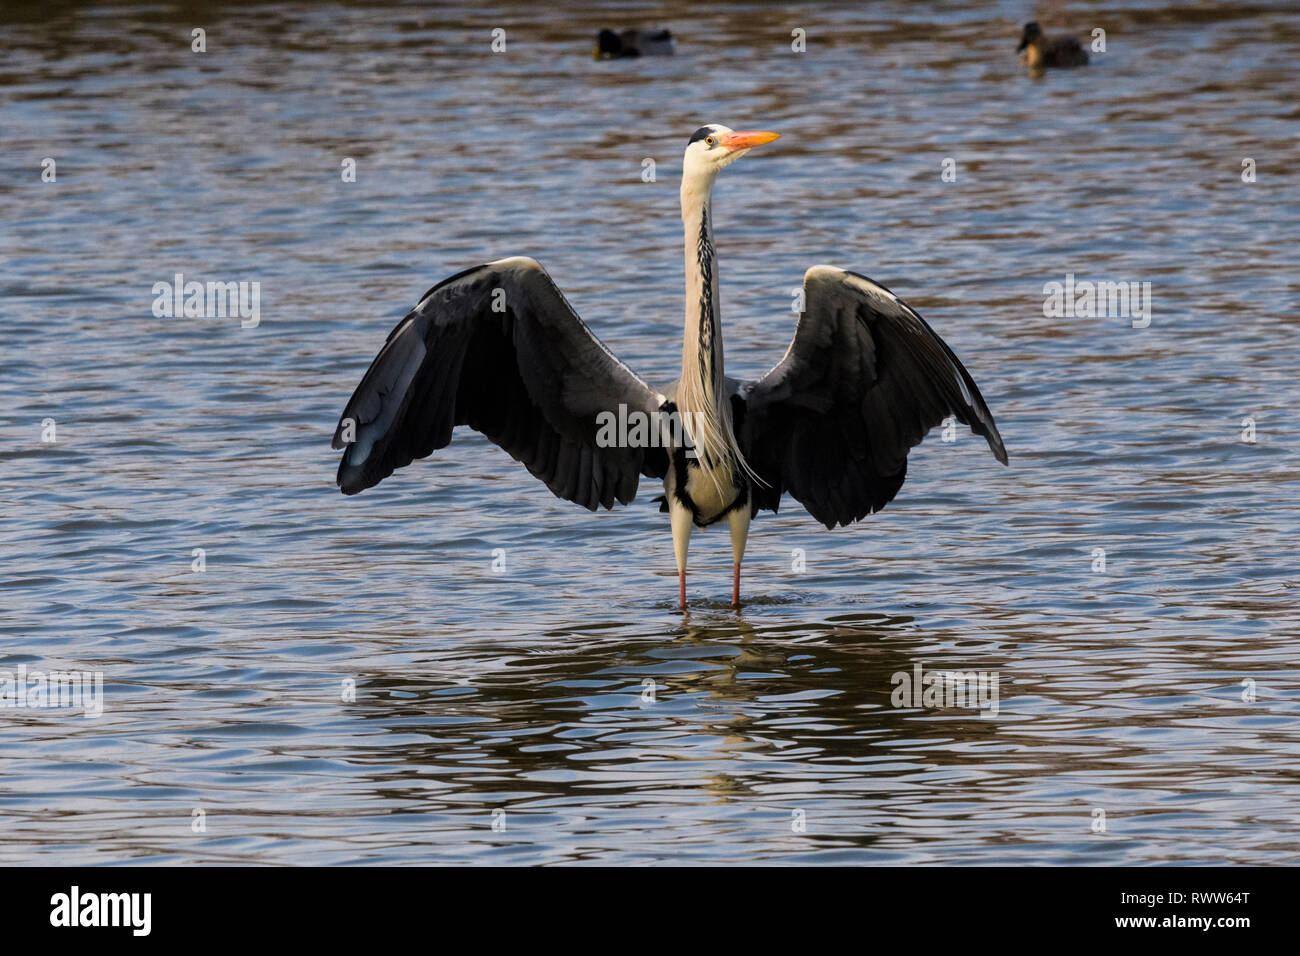 A grey heron standing in water with wings open - Stock Image